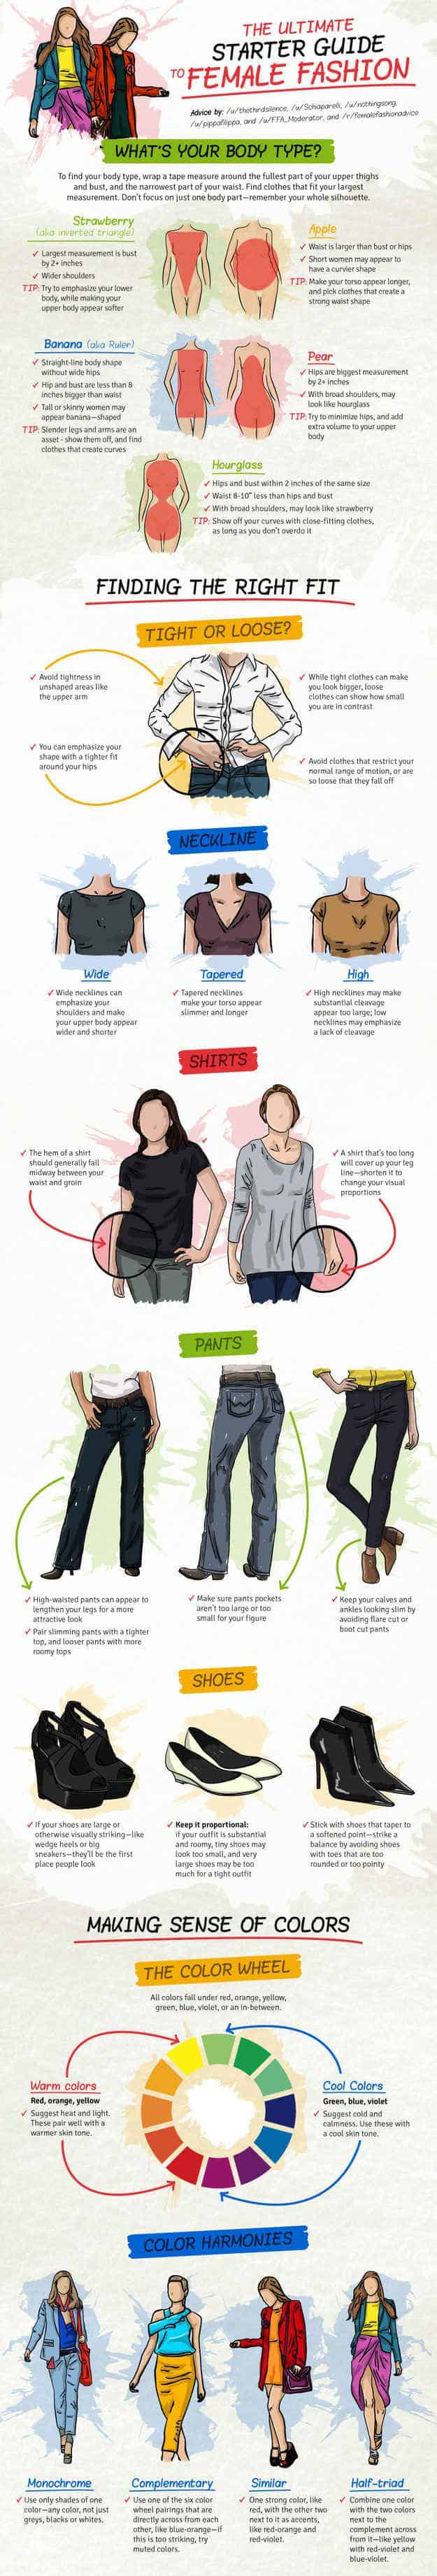 Female Fashion Tips